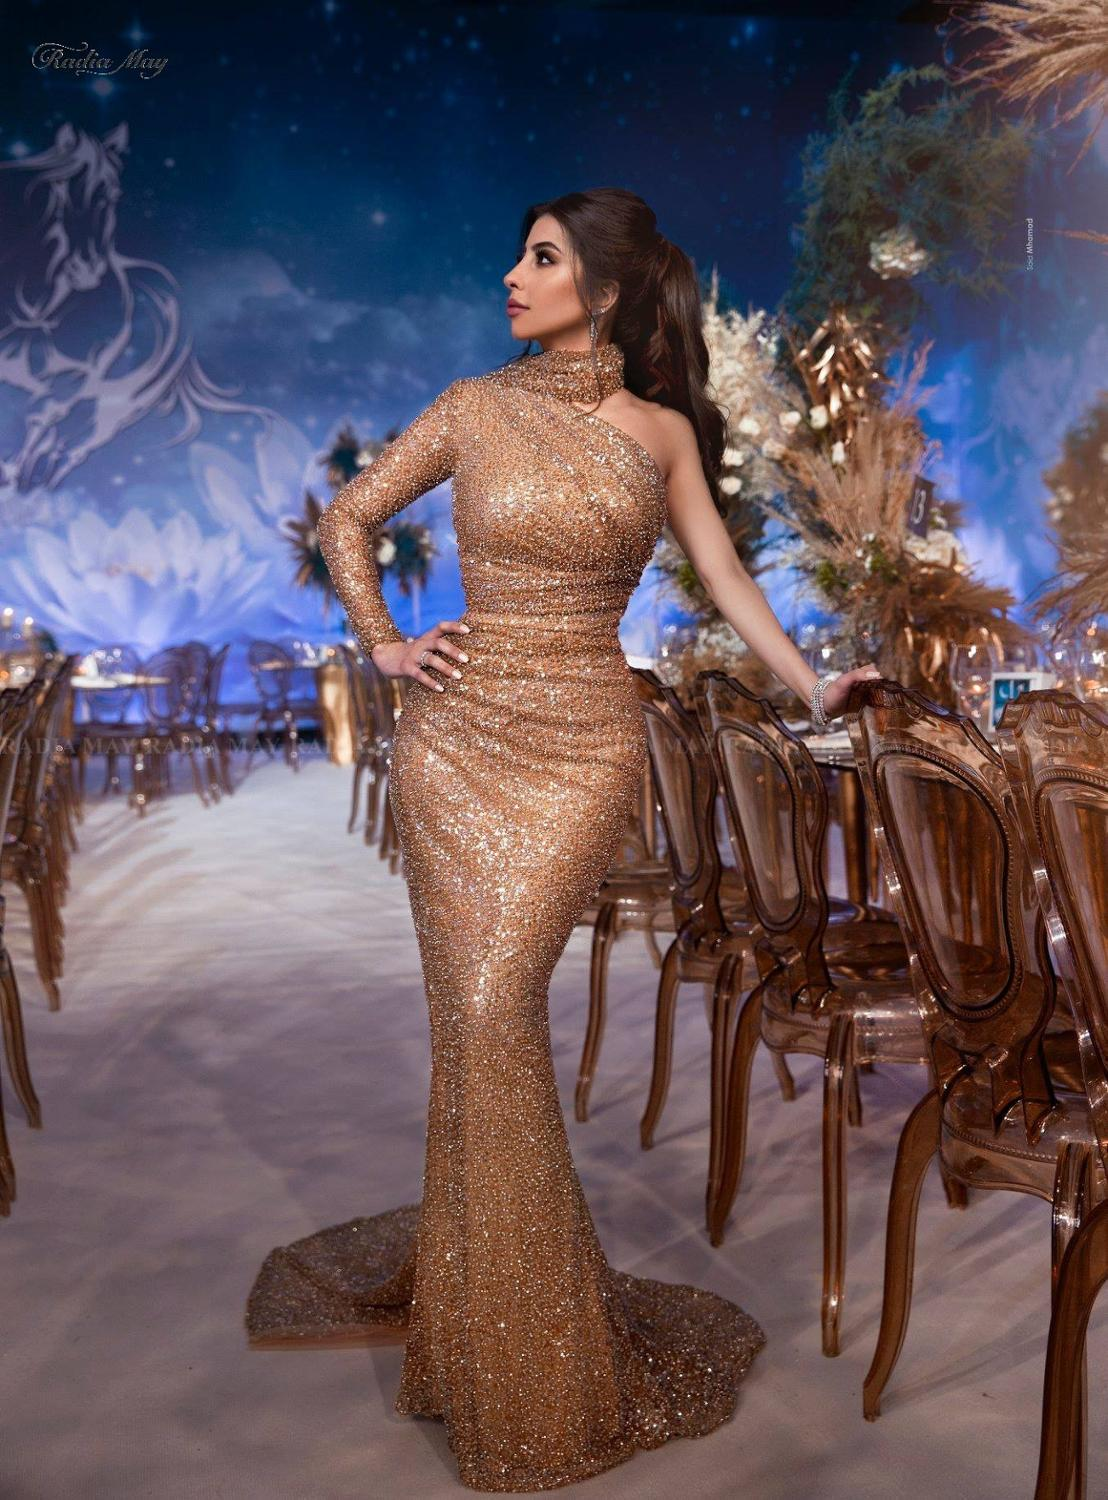 Custom Rose Gold Sequins Prom Evening Dresses Dubai Formal Party Mermaid Gown